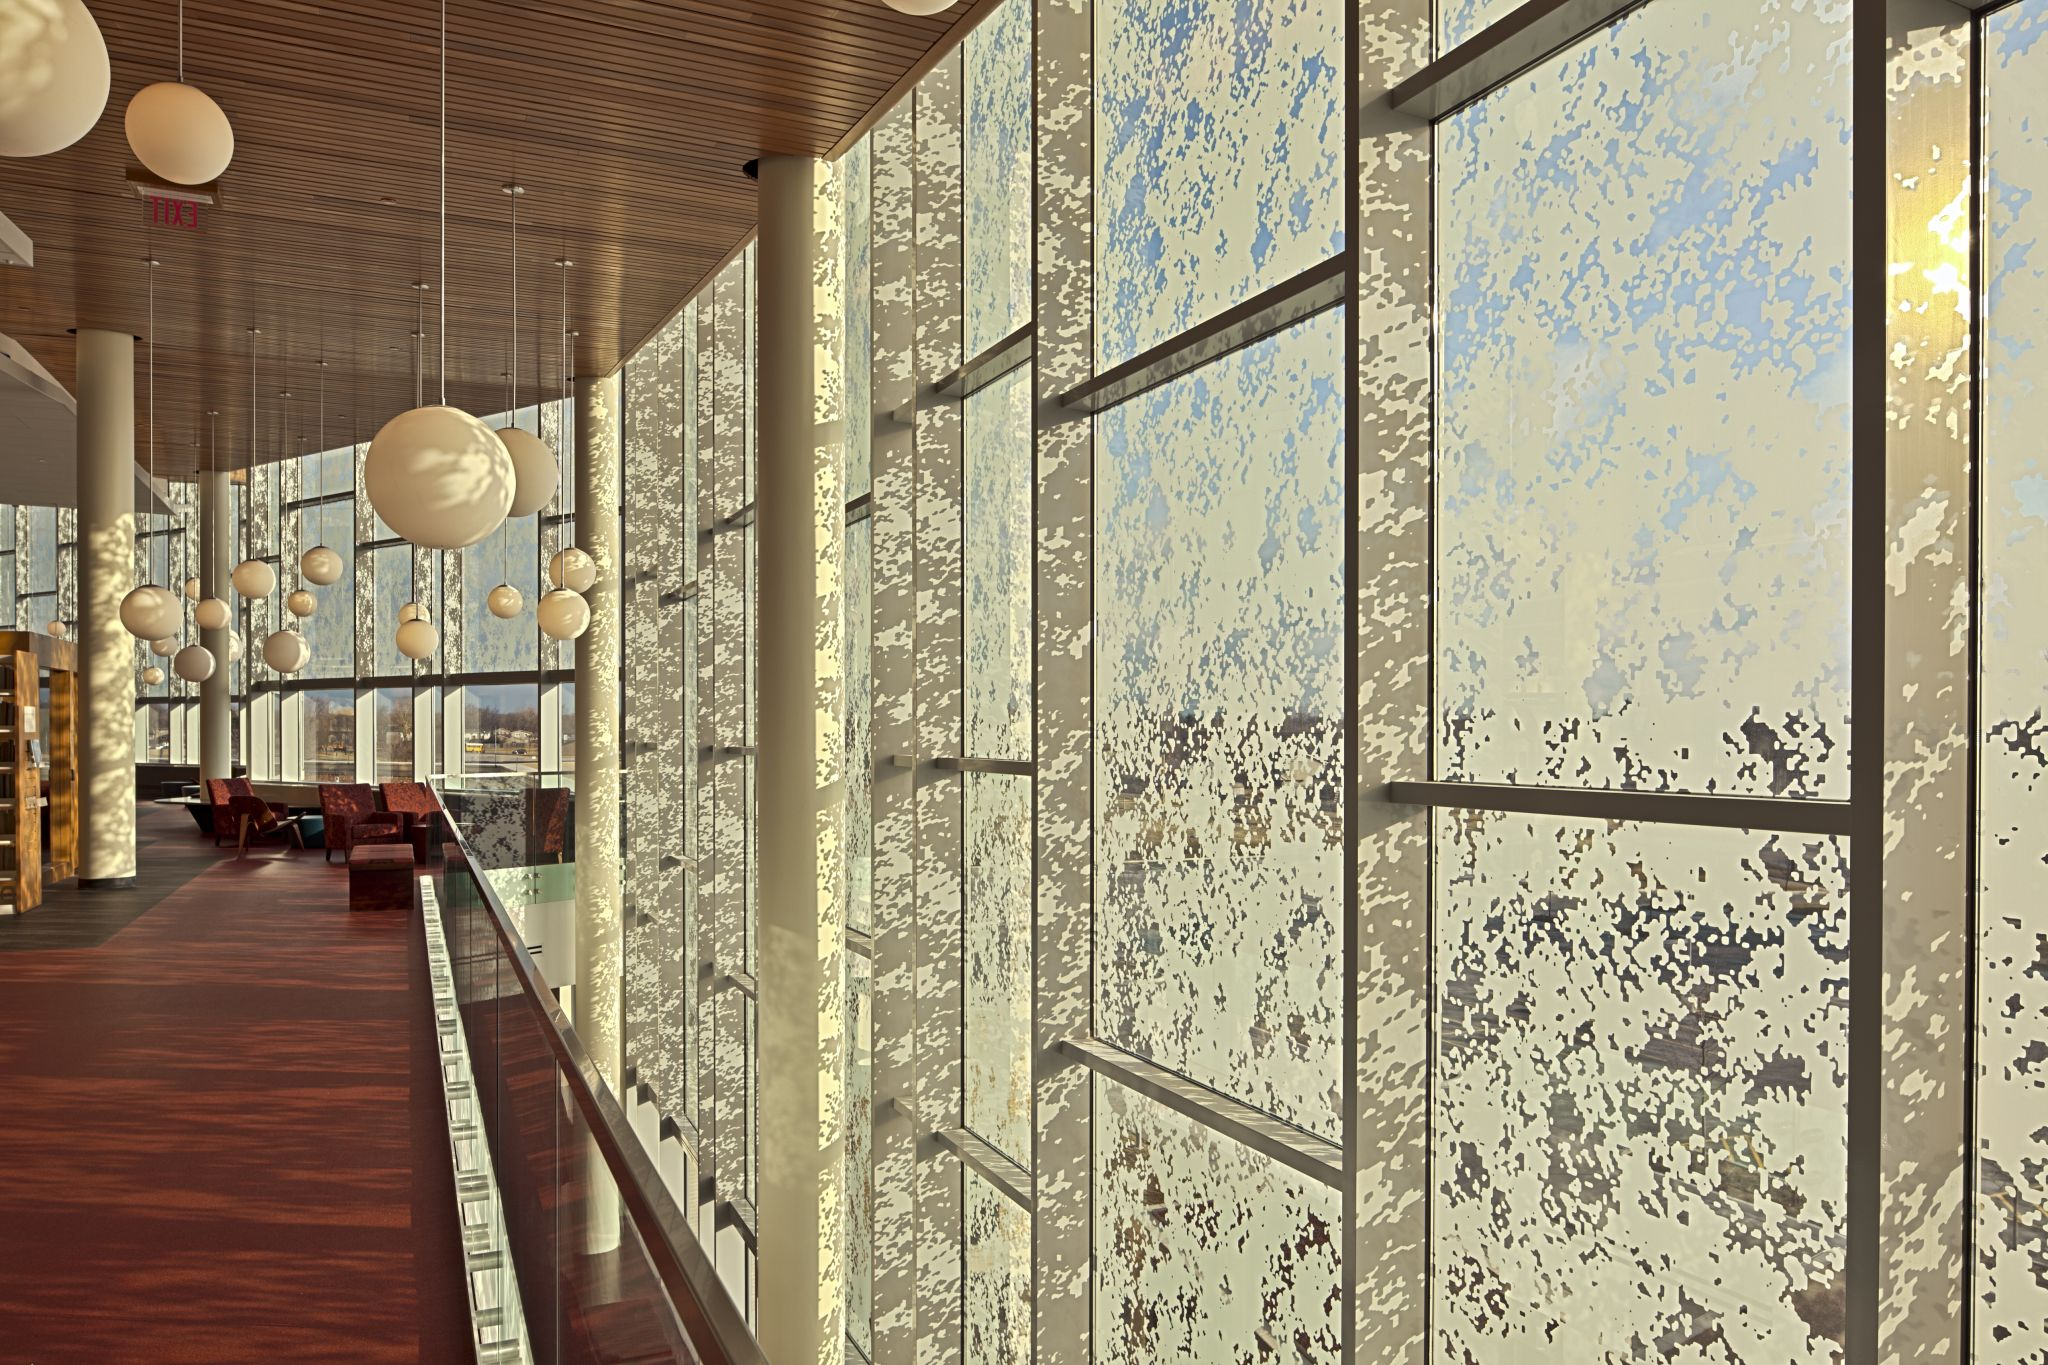 Silk-screening diffuses light into a public library in Bolingbrook, Illinois, preventing an over-lit interior.